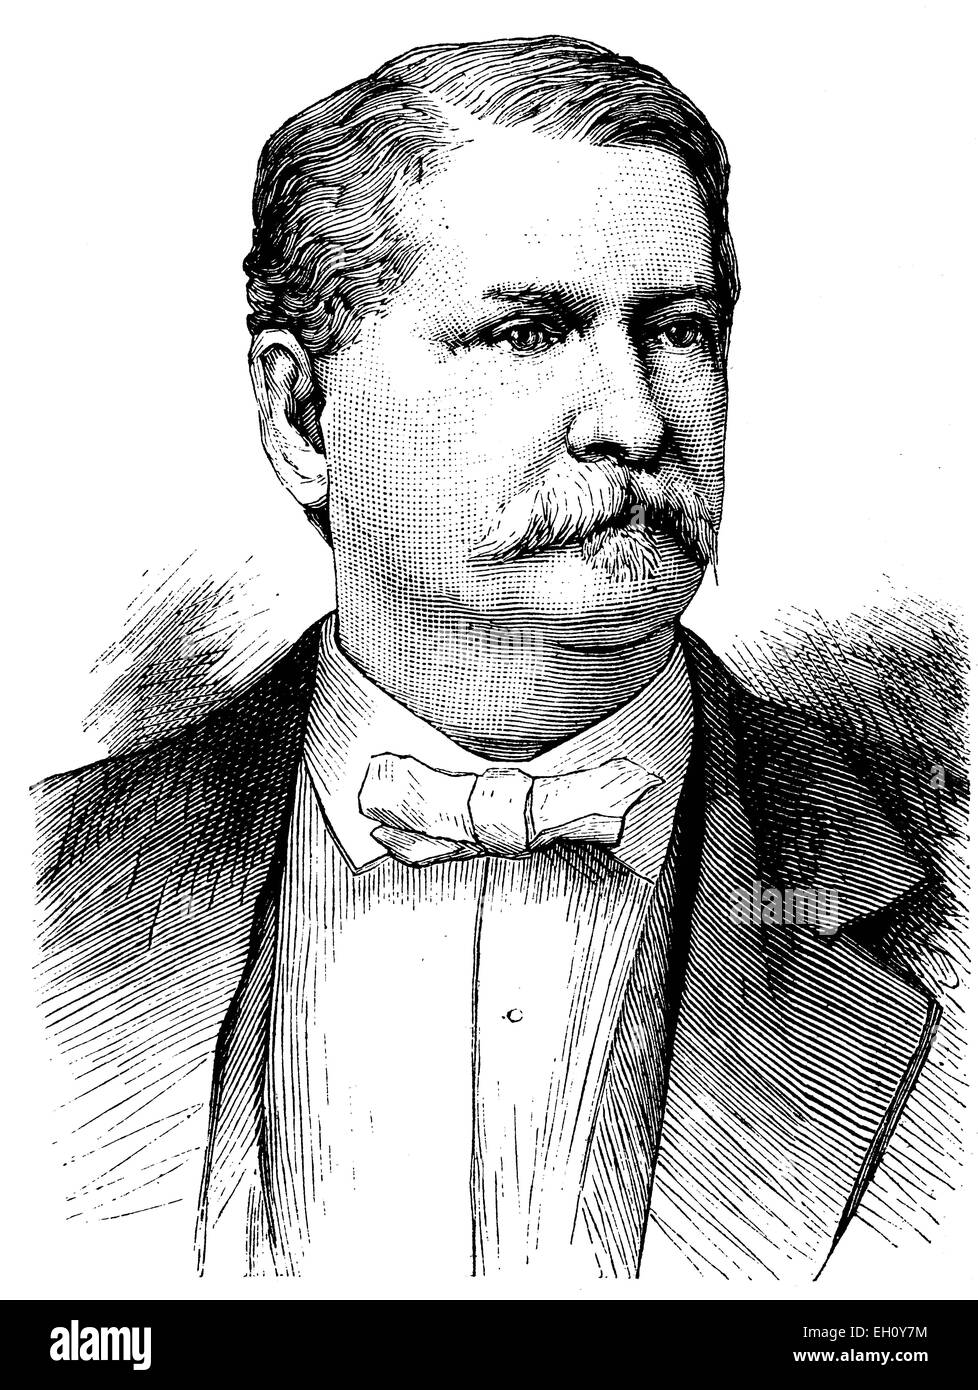 Winfield Scott Hancock, 1824-1886, Major-General of the U.S. Army, Democratic candidate for the US Presidential Stock Photo